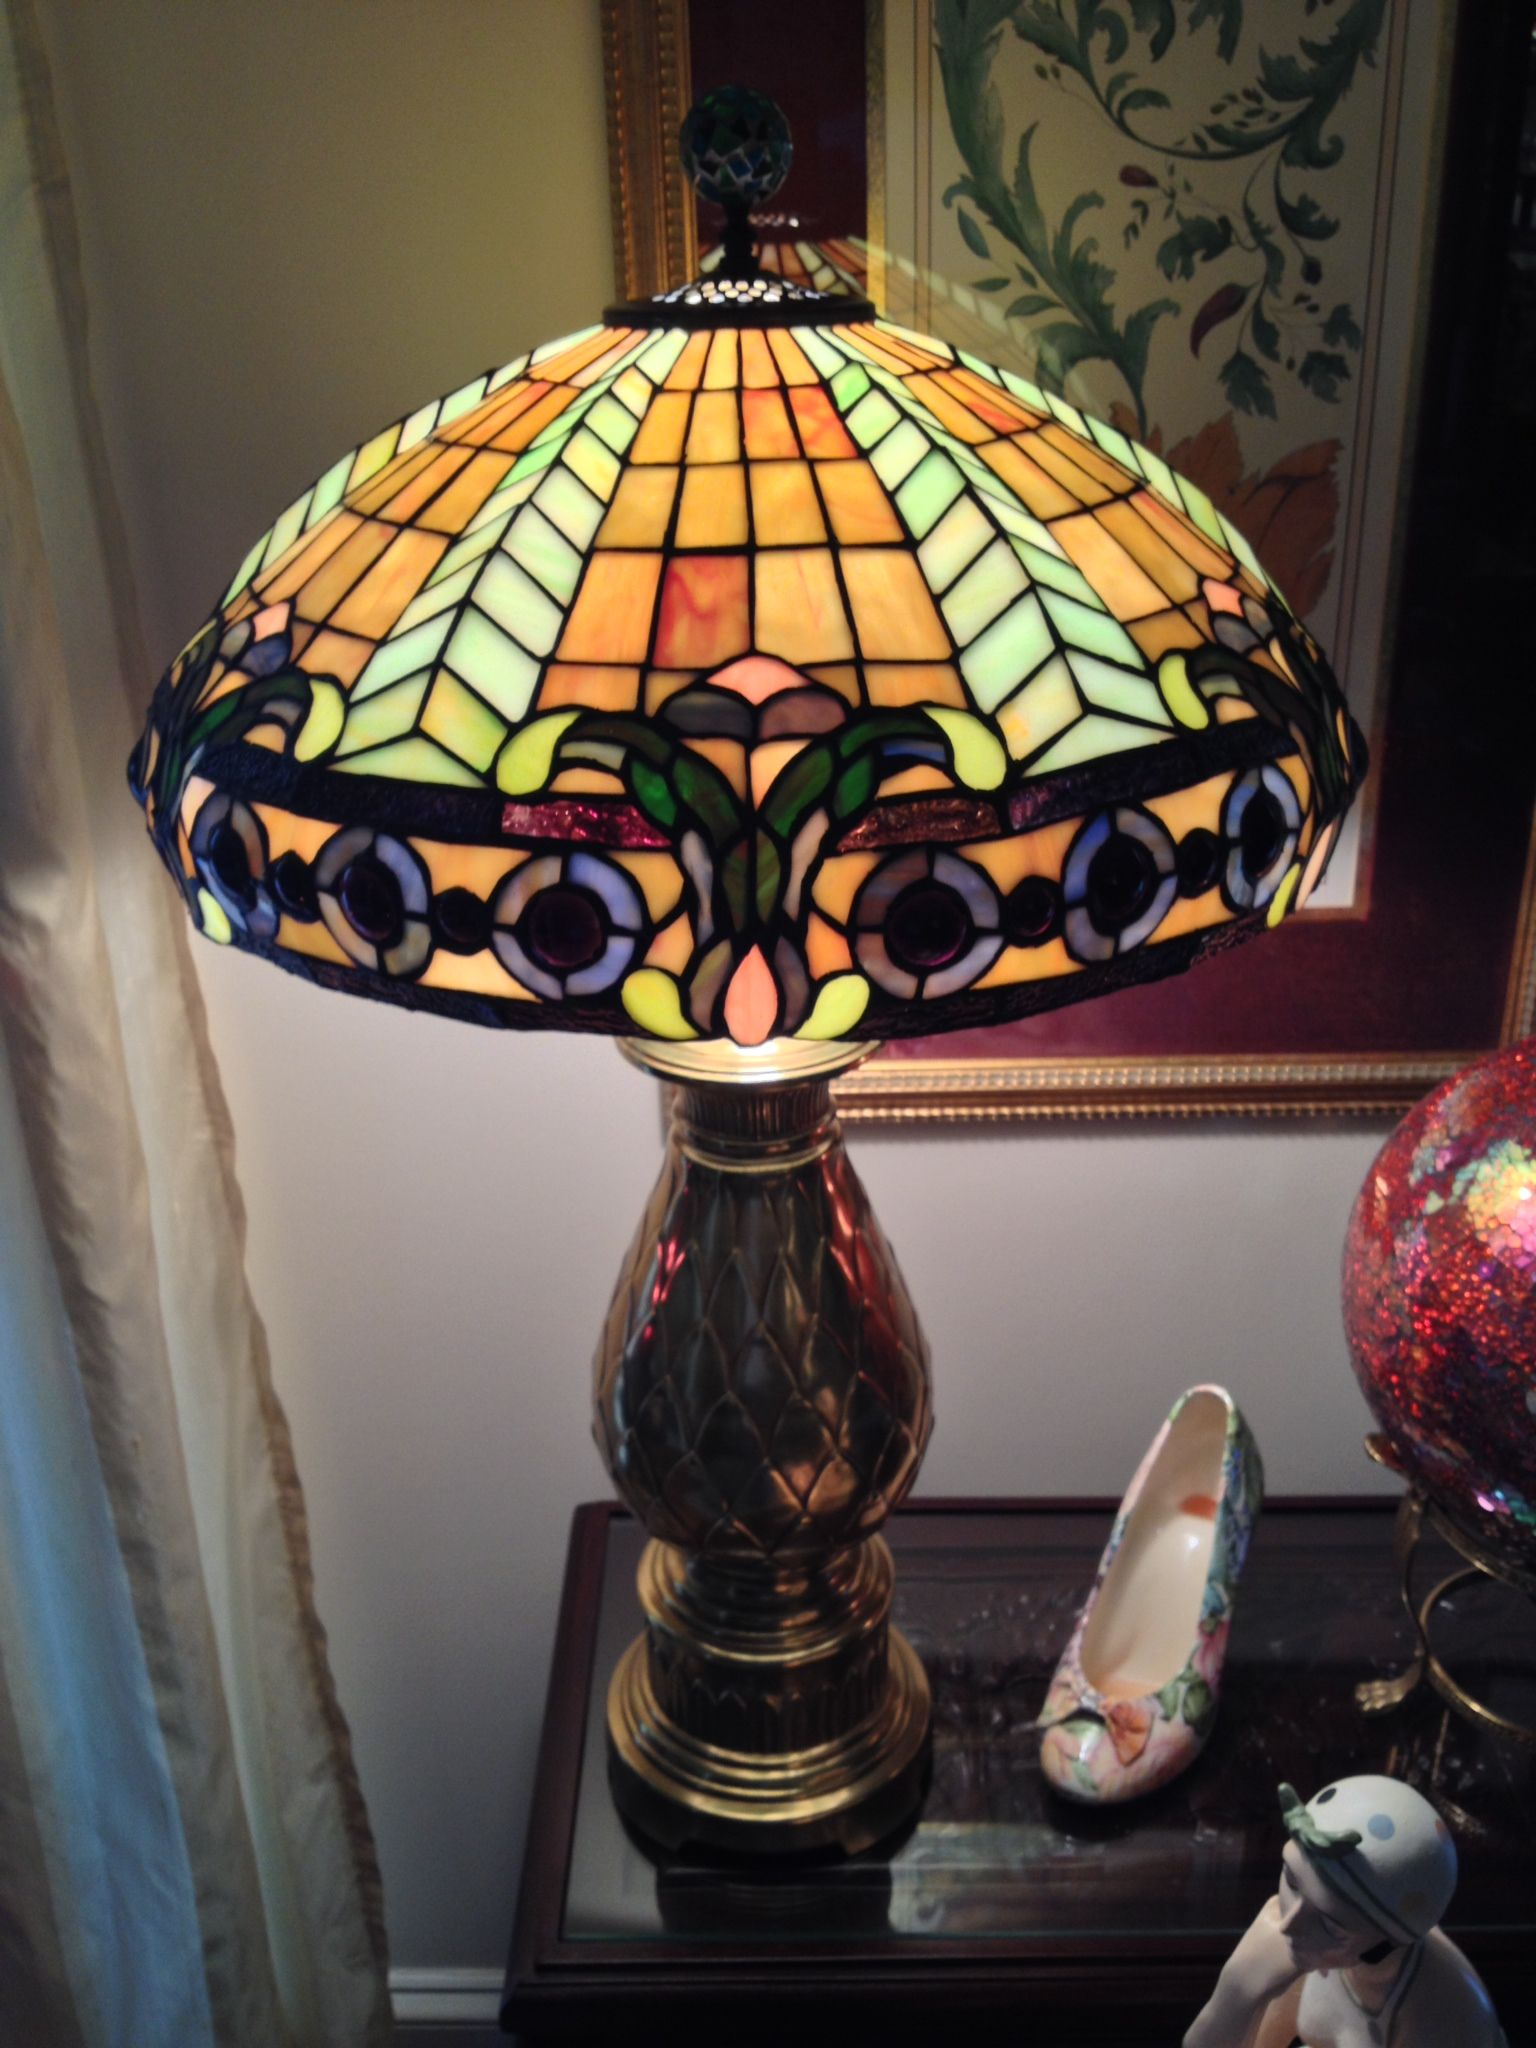 Pin di Marianne Turner su Tiffany lamps Lampade tiffany